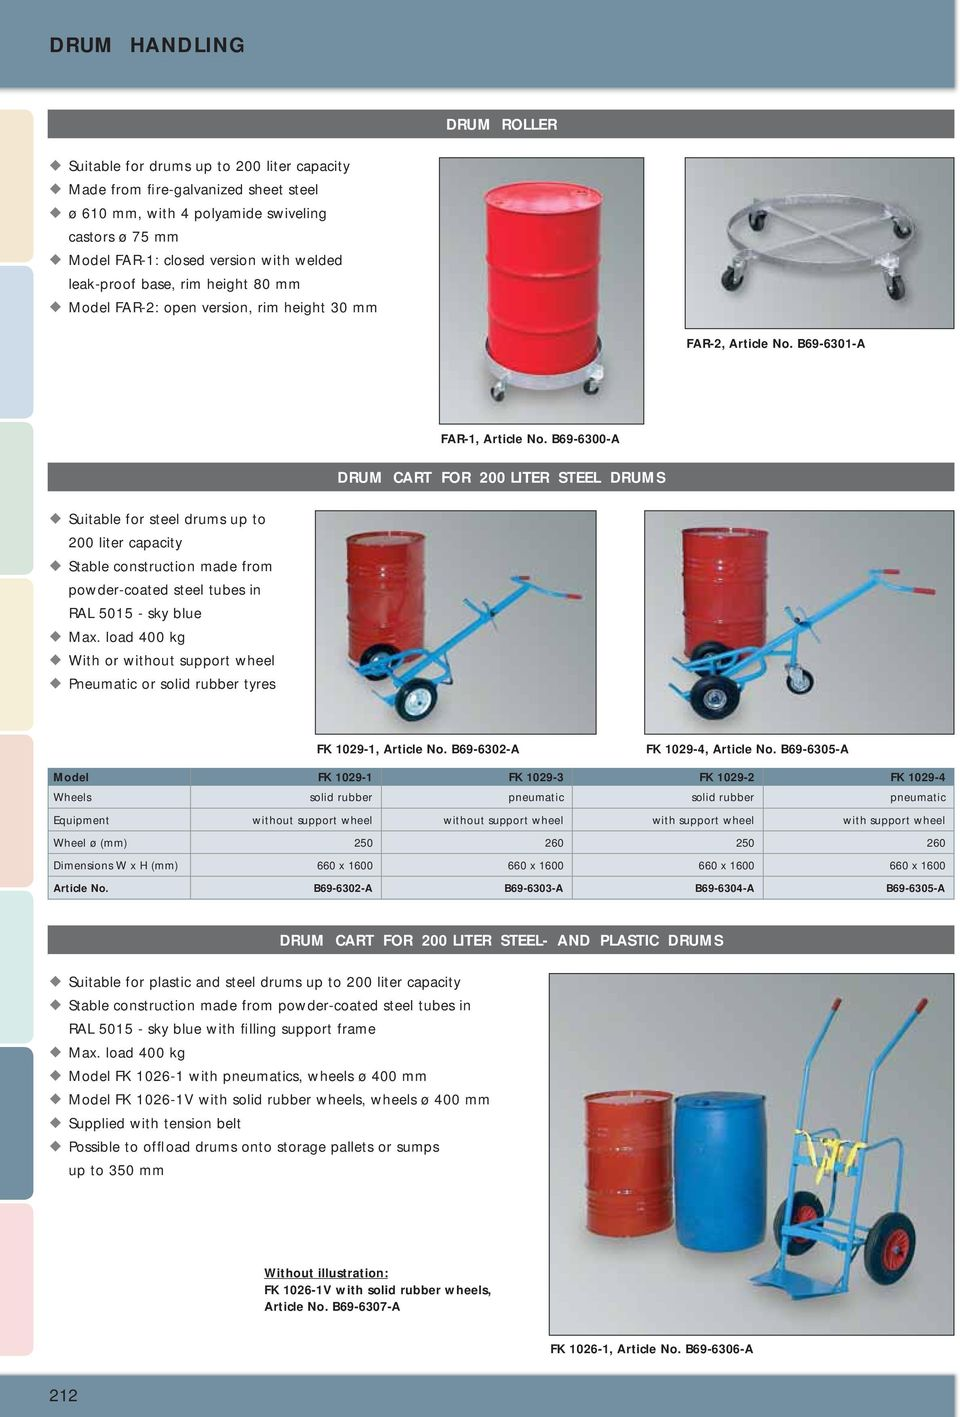 B69-6300-A DRUM CART FOR 200 LITER STEEL DRUMS Suitable for steel drums up to 200 liter capacity Stable construction made from powder-coated steel tubes in RAL 5015 - sky blue With or without support